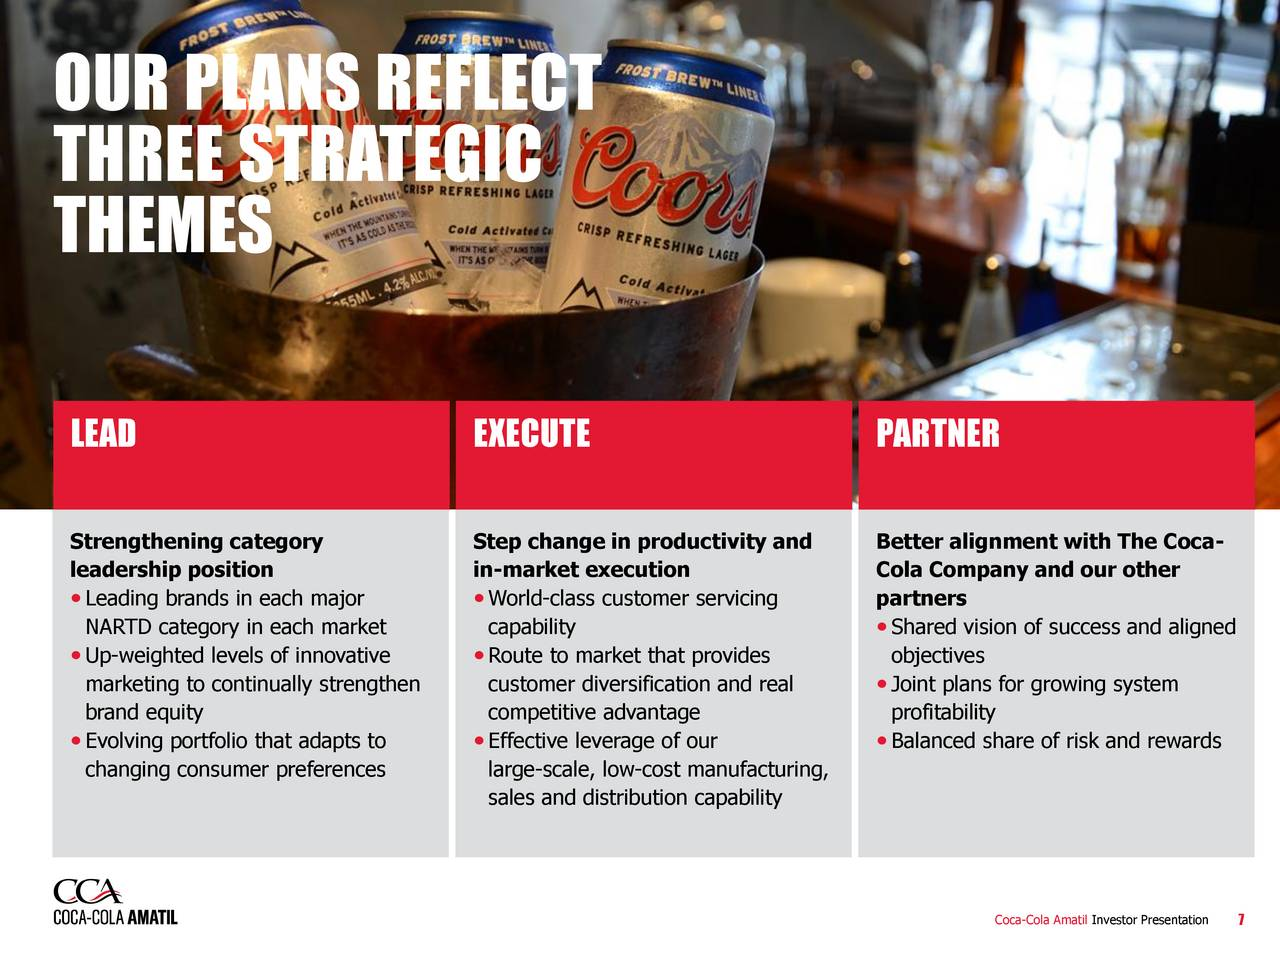 coca cola amatil ltd largest company in Limited advancement frequent relocation discourages out of the box thinking   the coca-cola company reaches customers through the largest beverage.